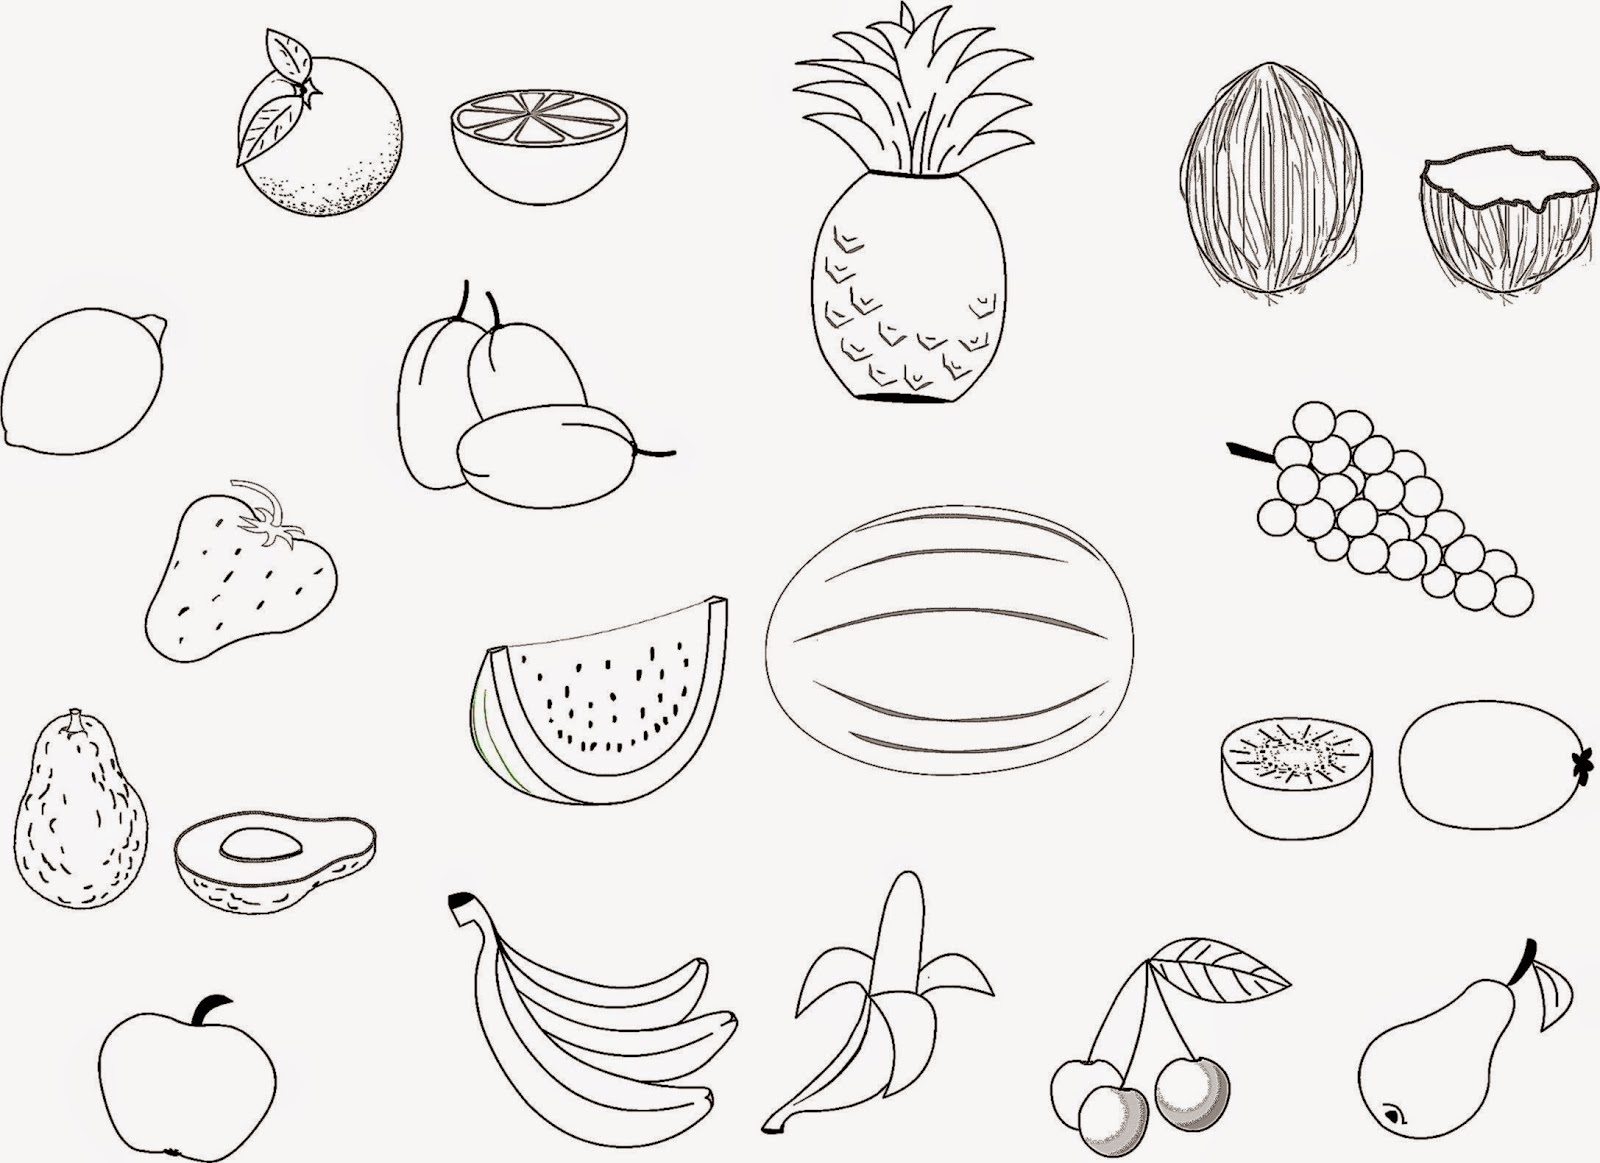 Fruit Coloring Pages At Getcolorings